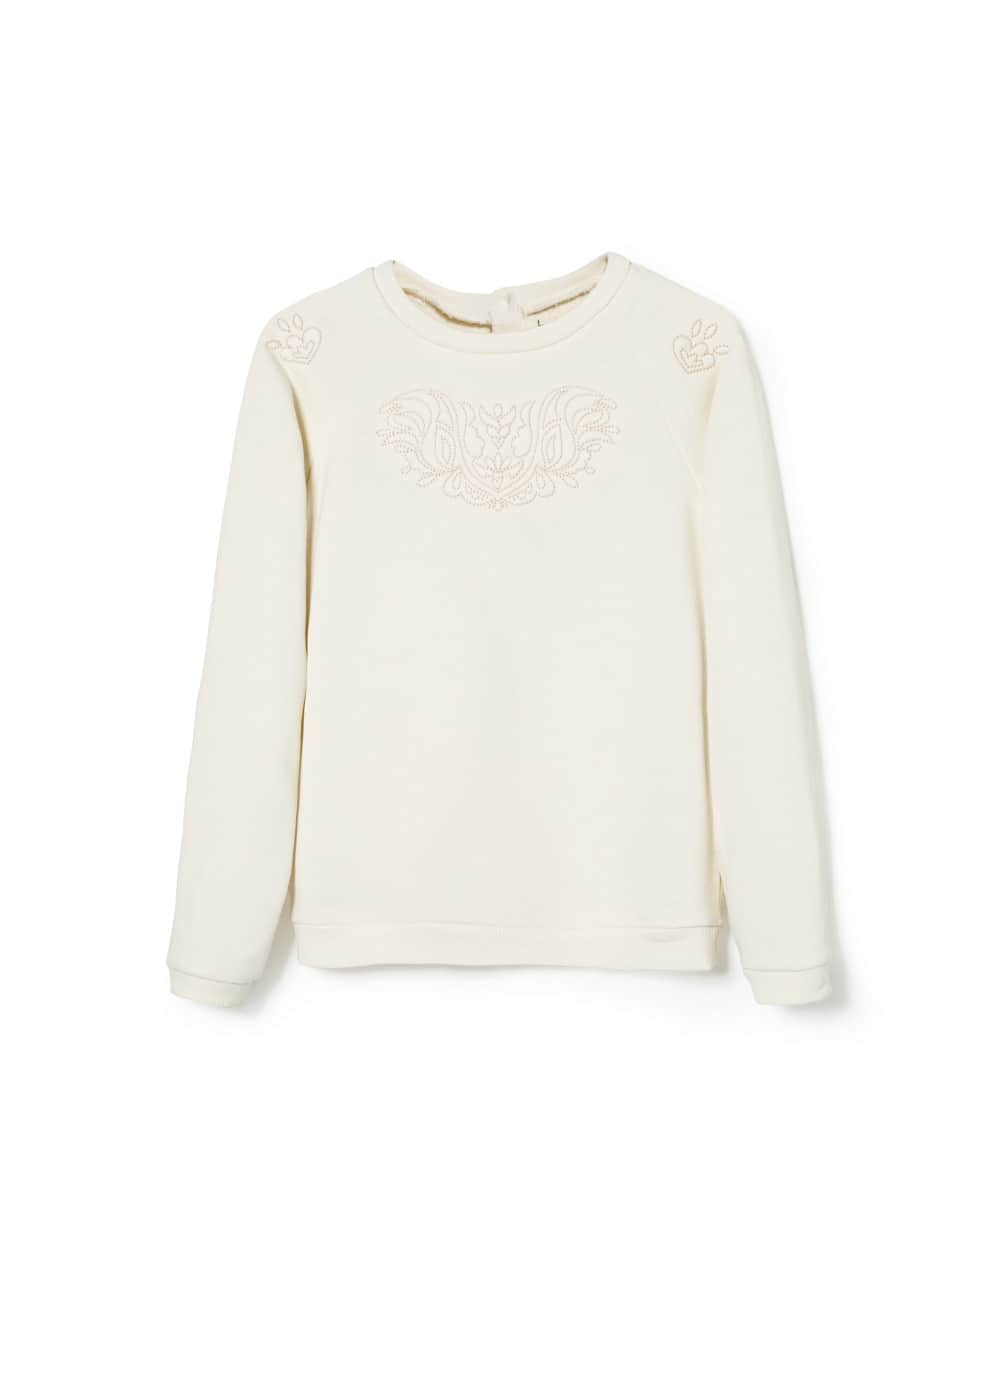 Stitch detail sweatshirt | MANGO KIDS